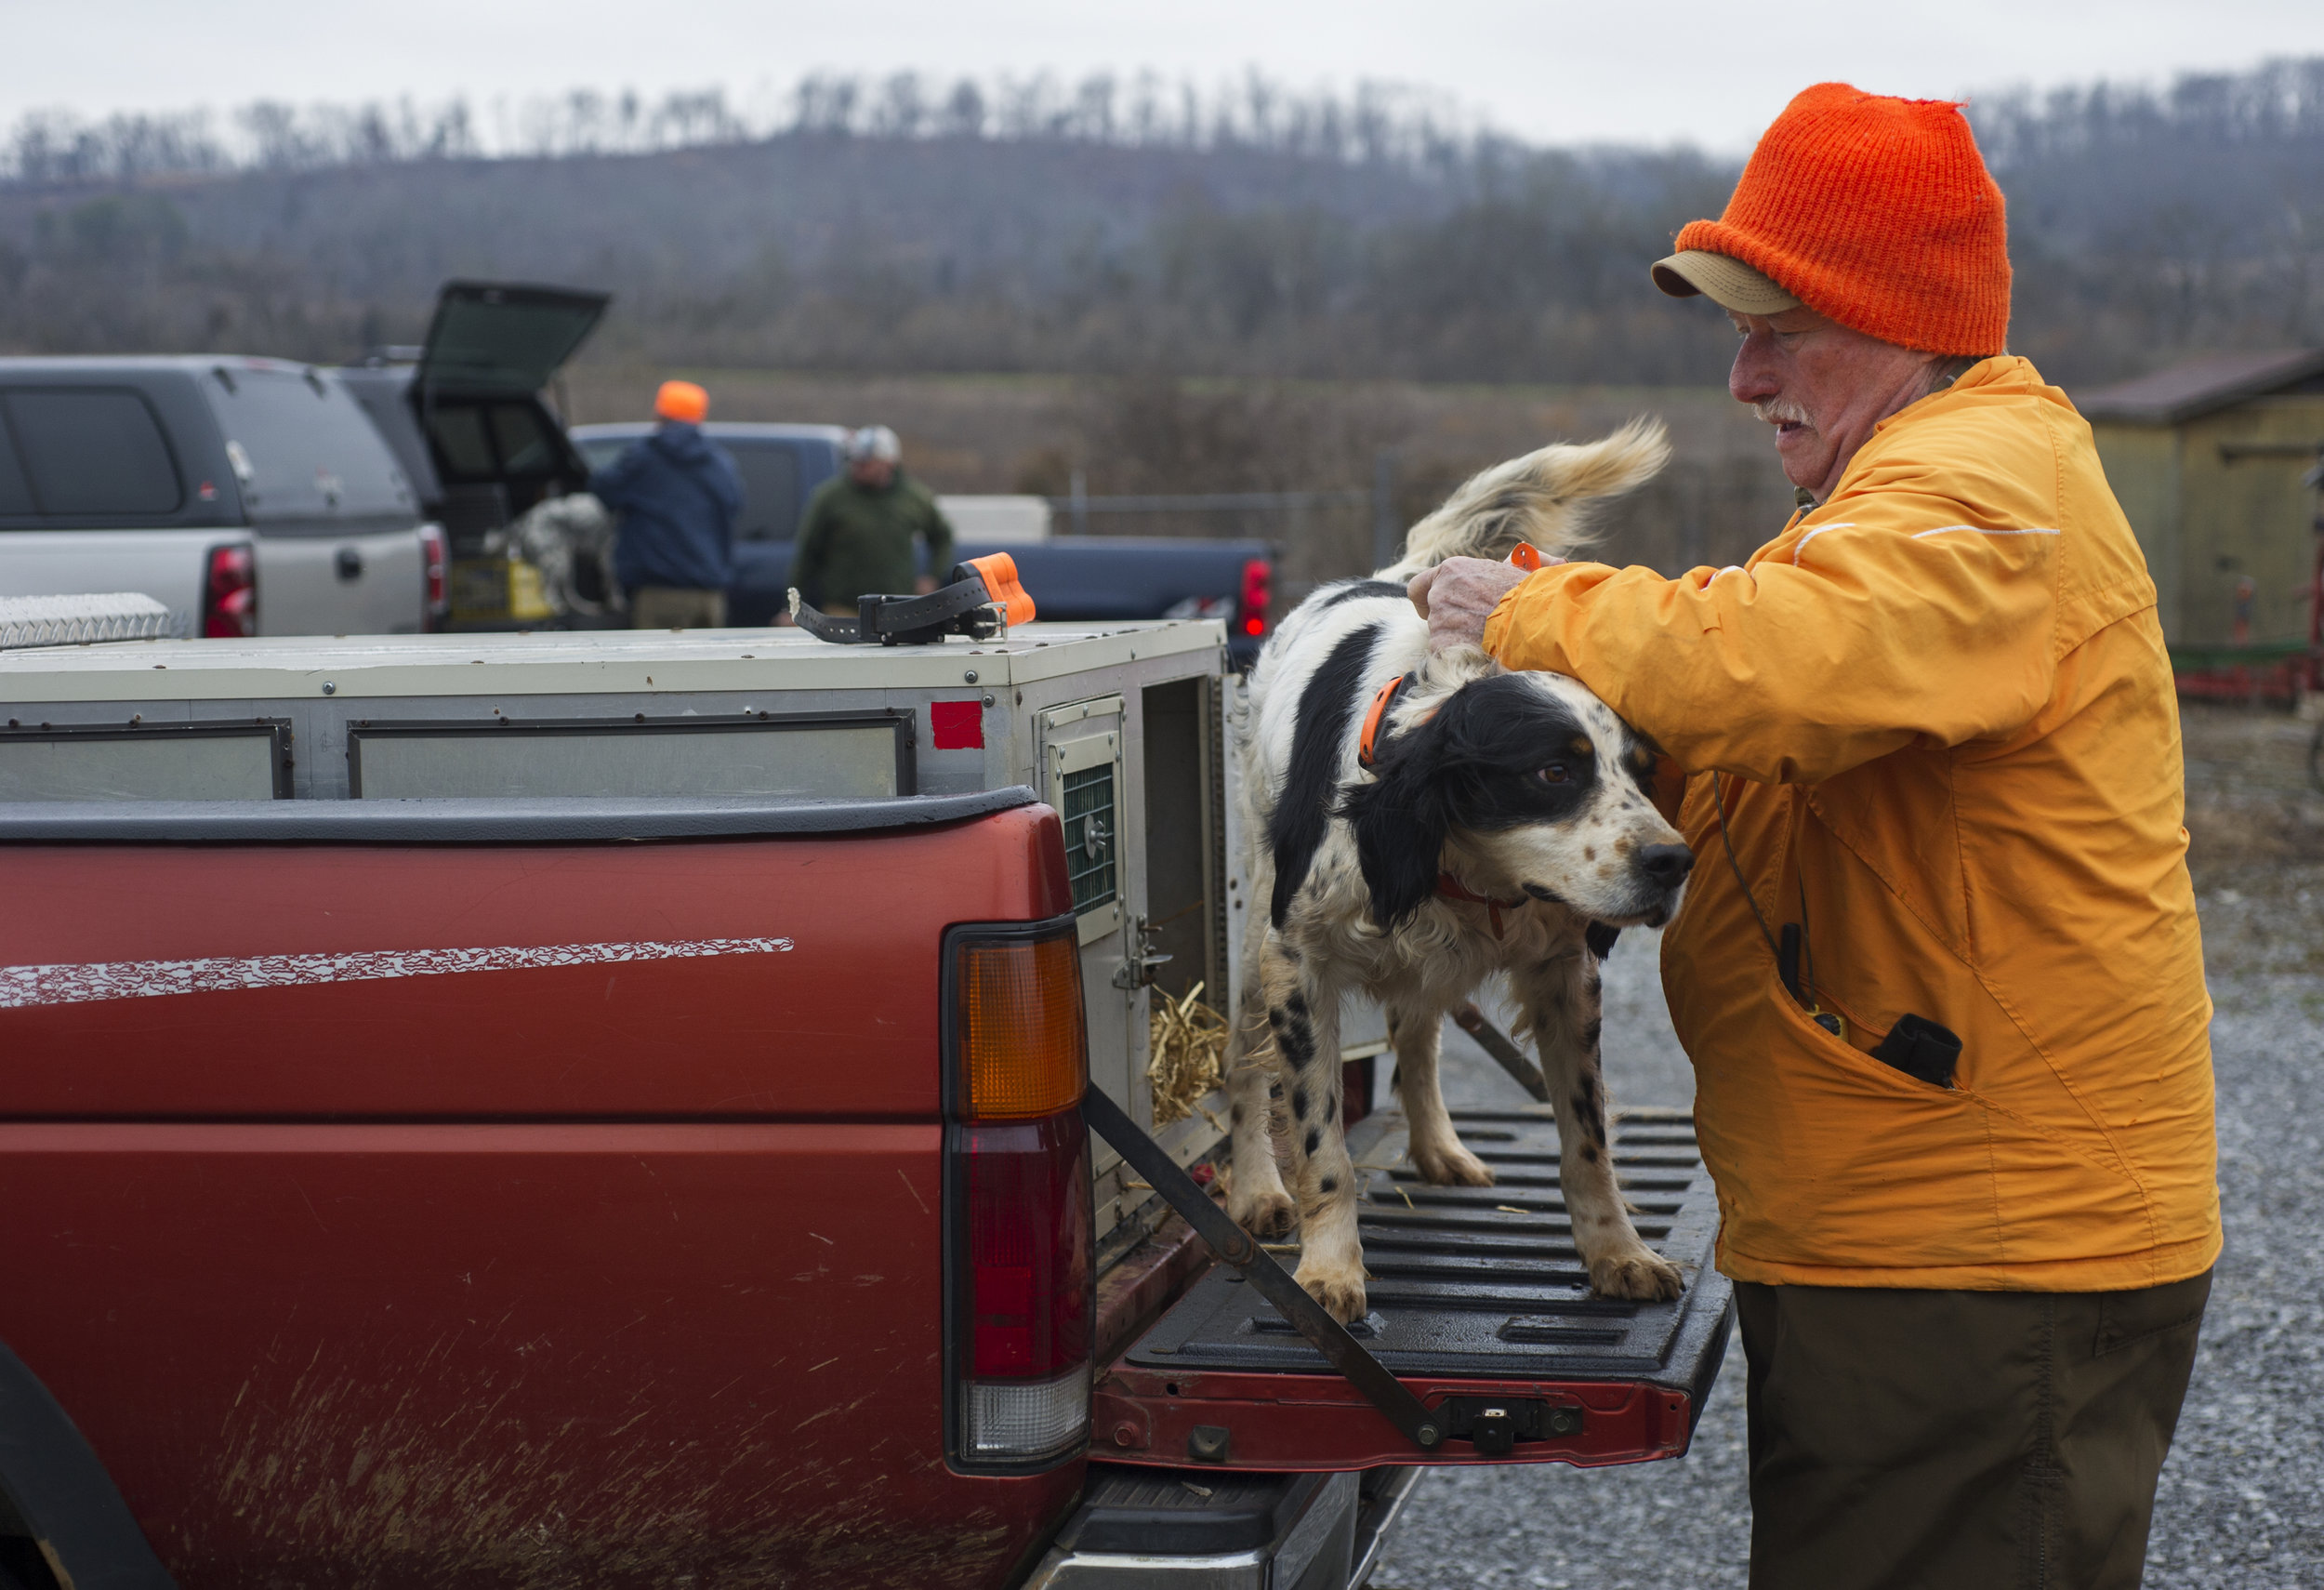 Glenn Palmer puts a collar on his English Setter as they prepare to hunt for quail coveys during a quail census conducted by the the Tennessee Wildlife Resource Agency using bird dogs at Kiker Bottoms Tuesday, Feb. 10, 2015.